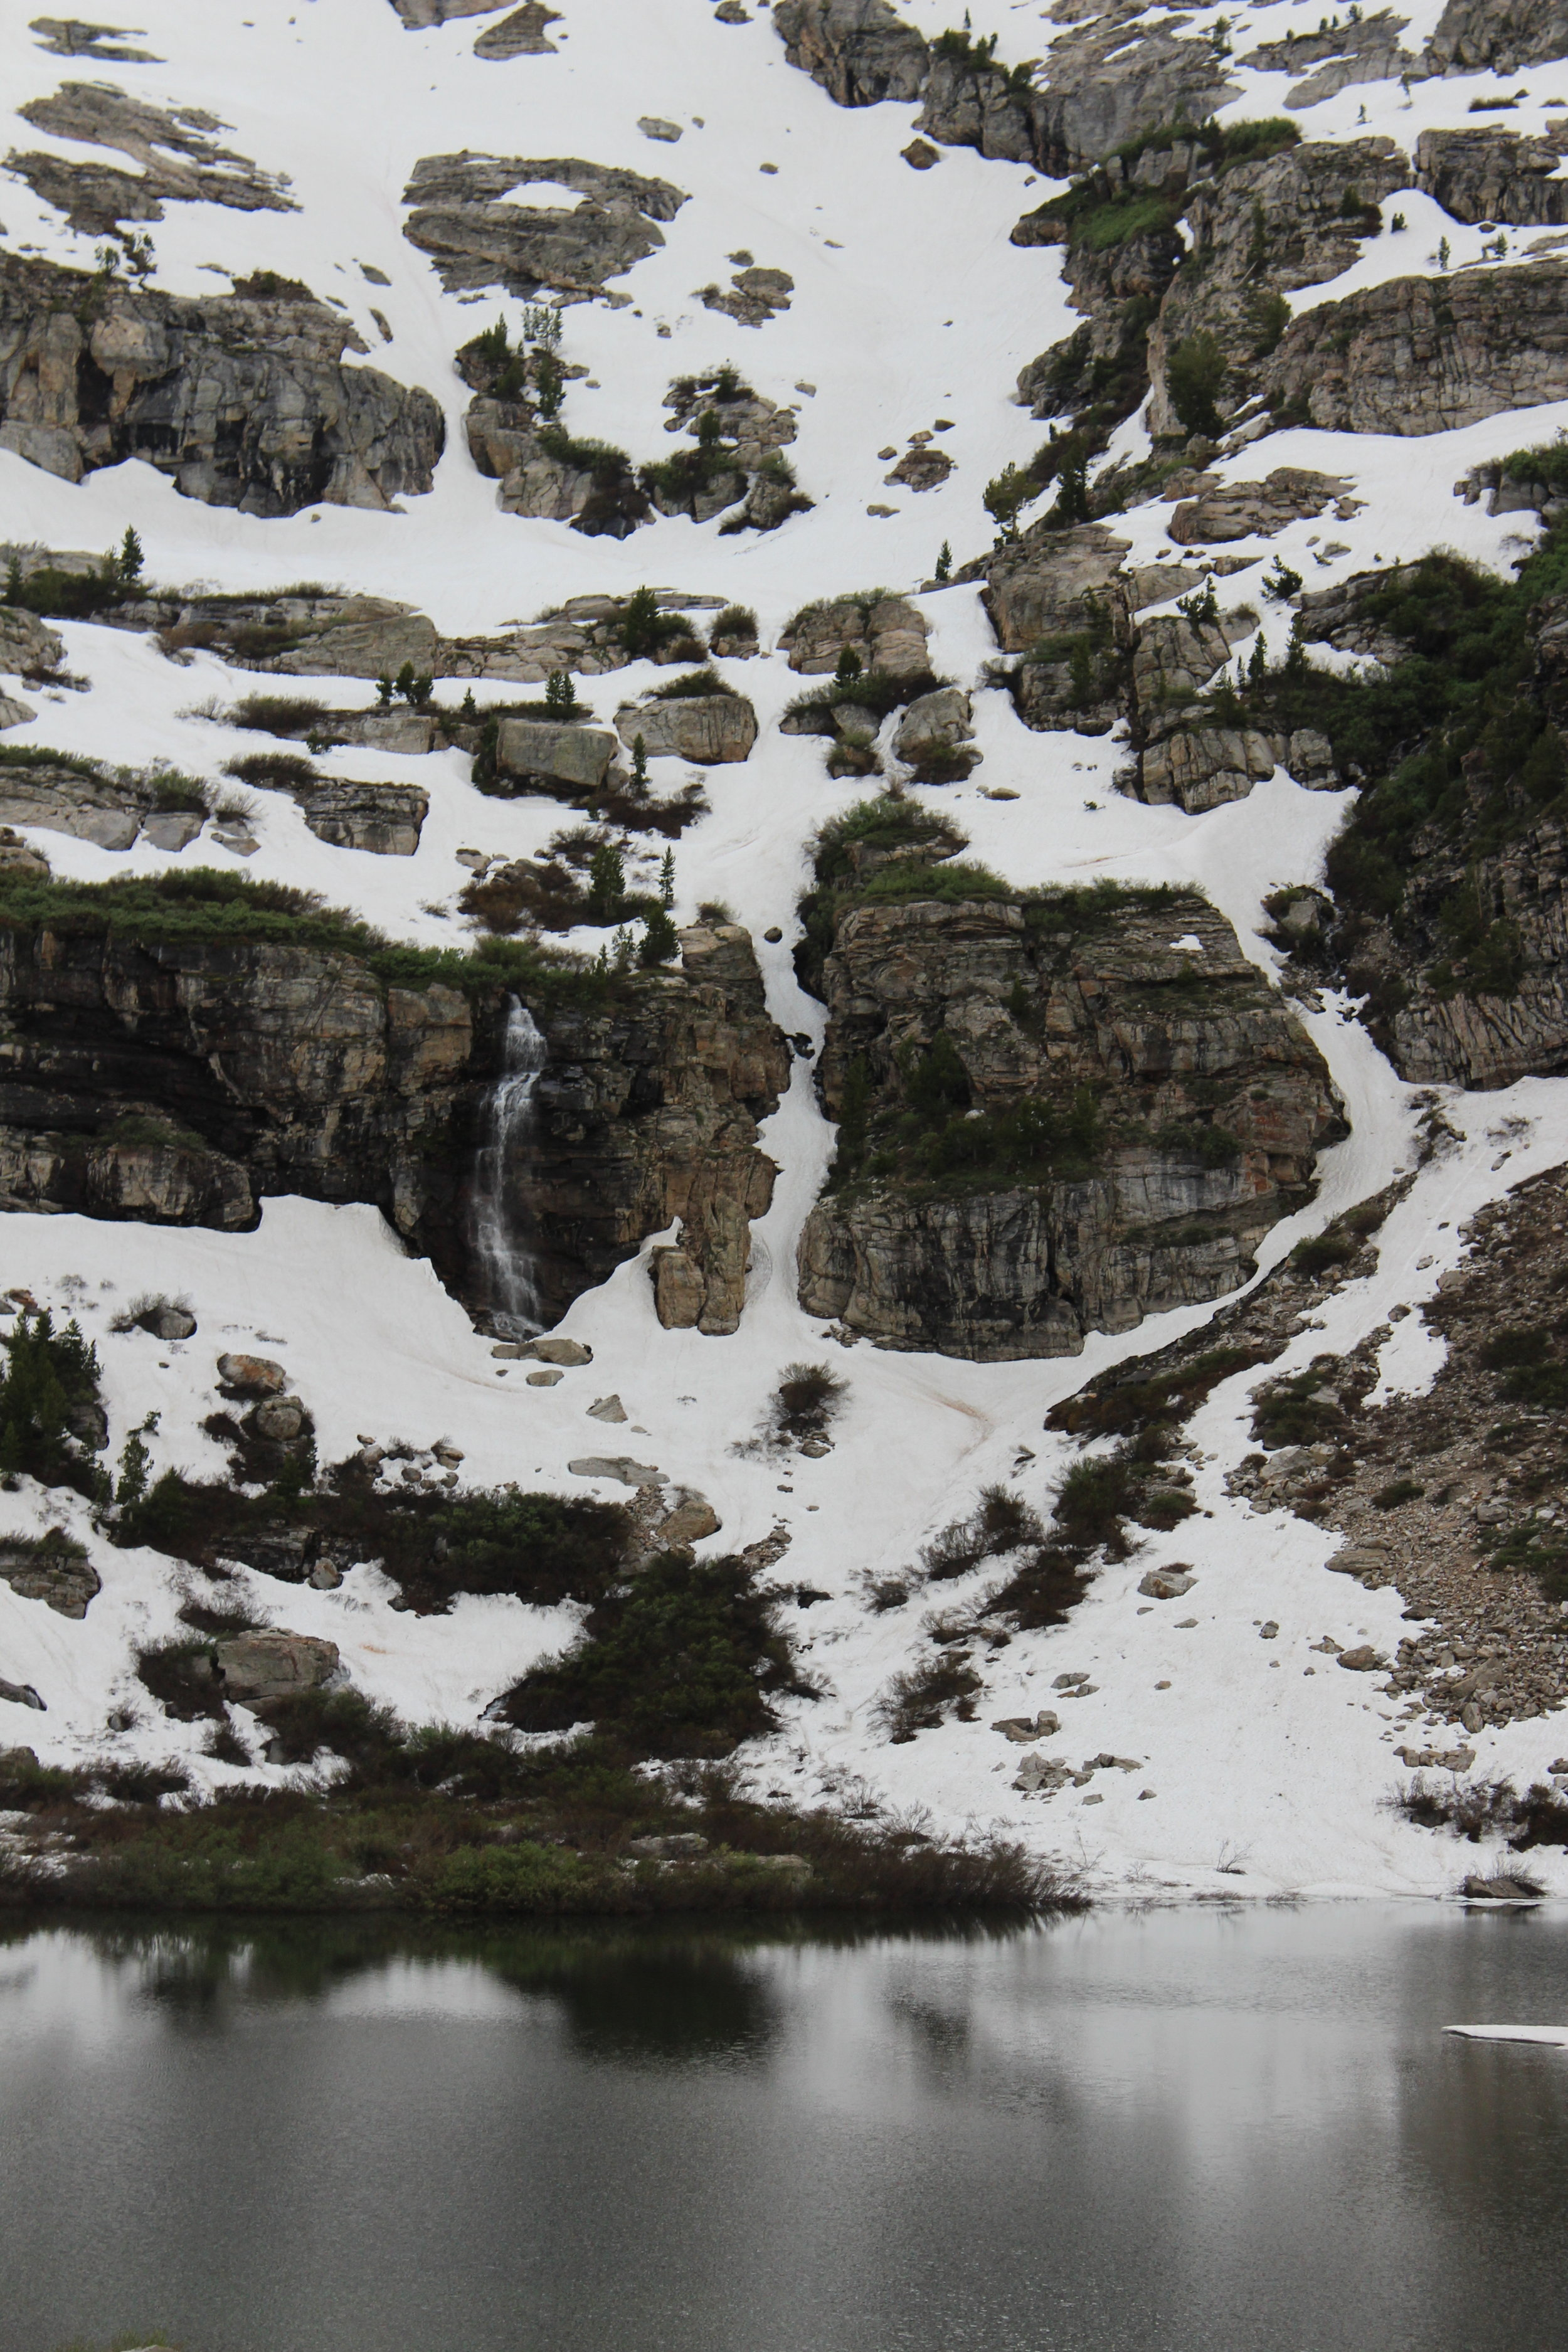 One of about 6 waterfalls feeding Griswold Lake during peak snowmelt